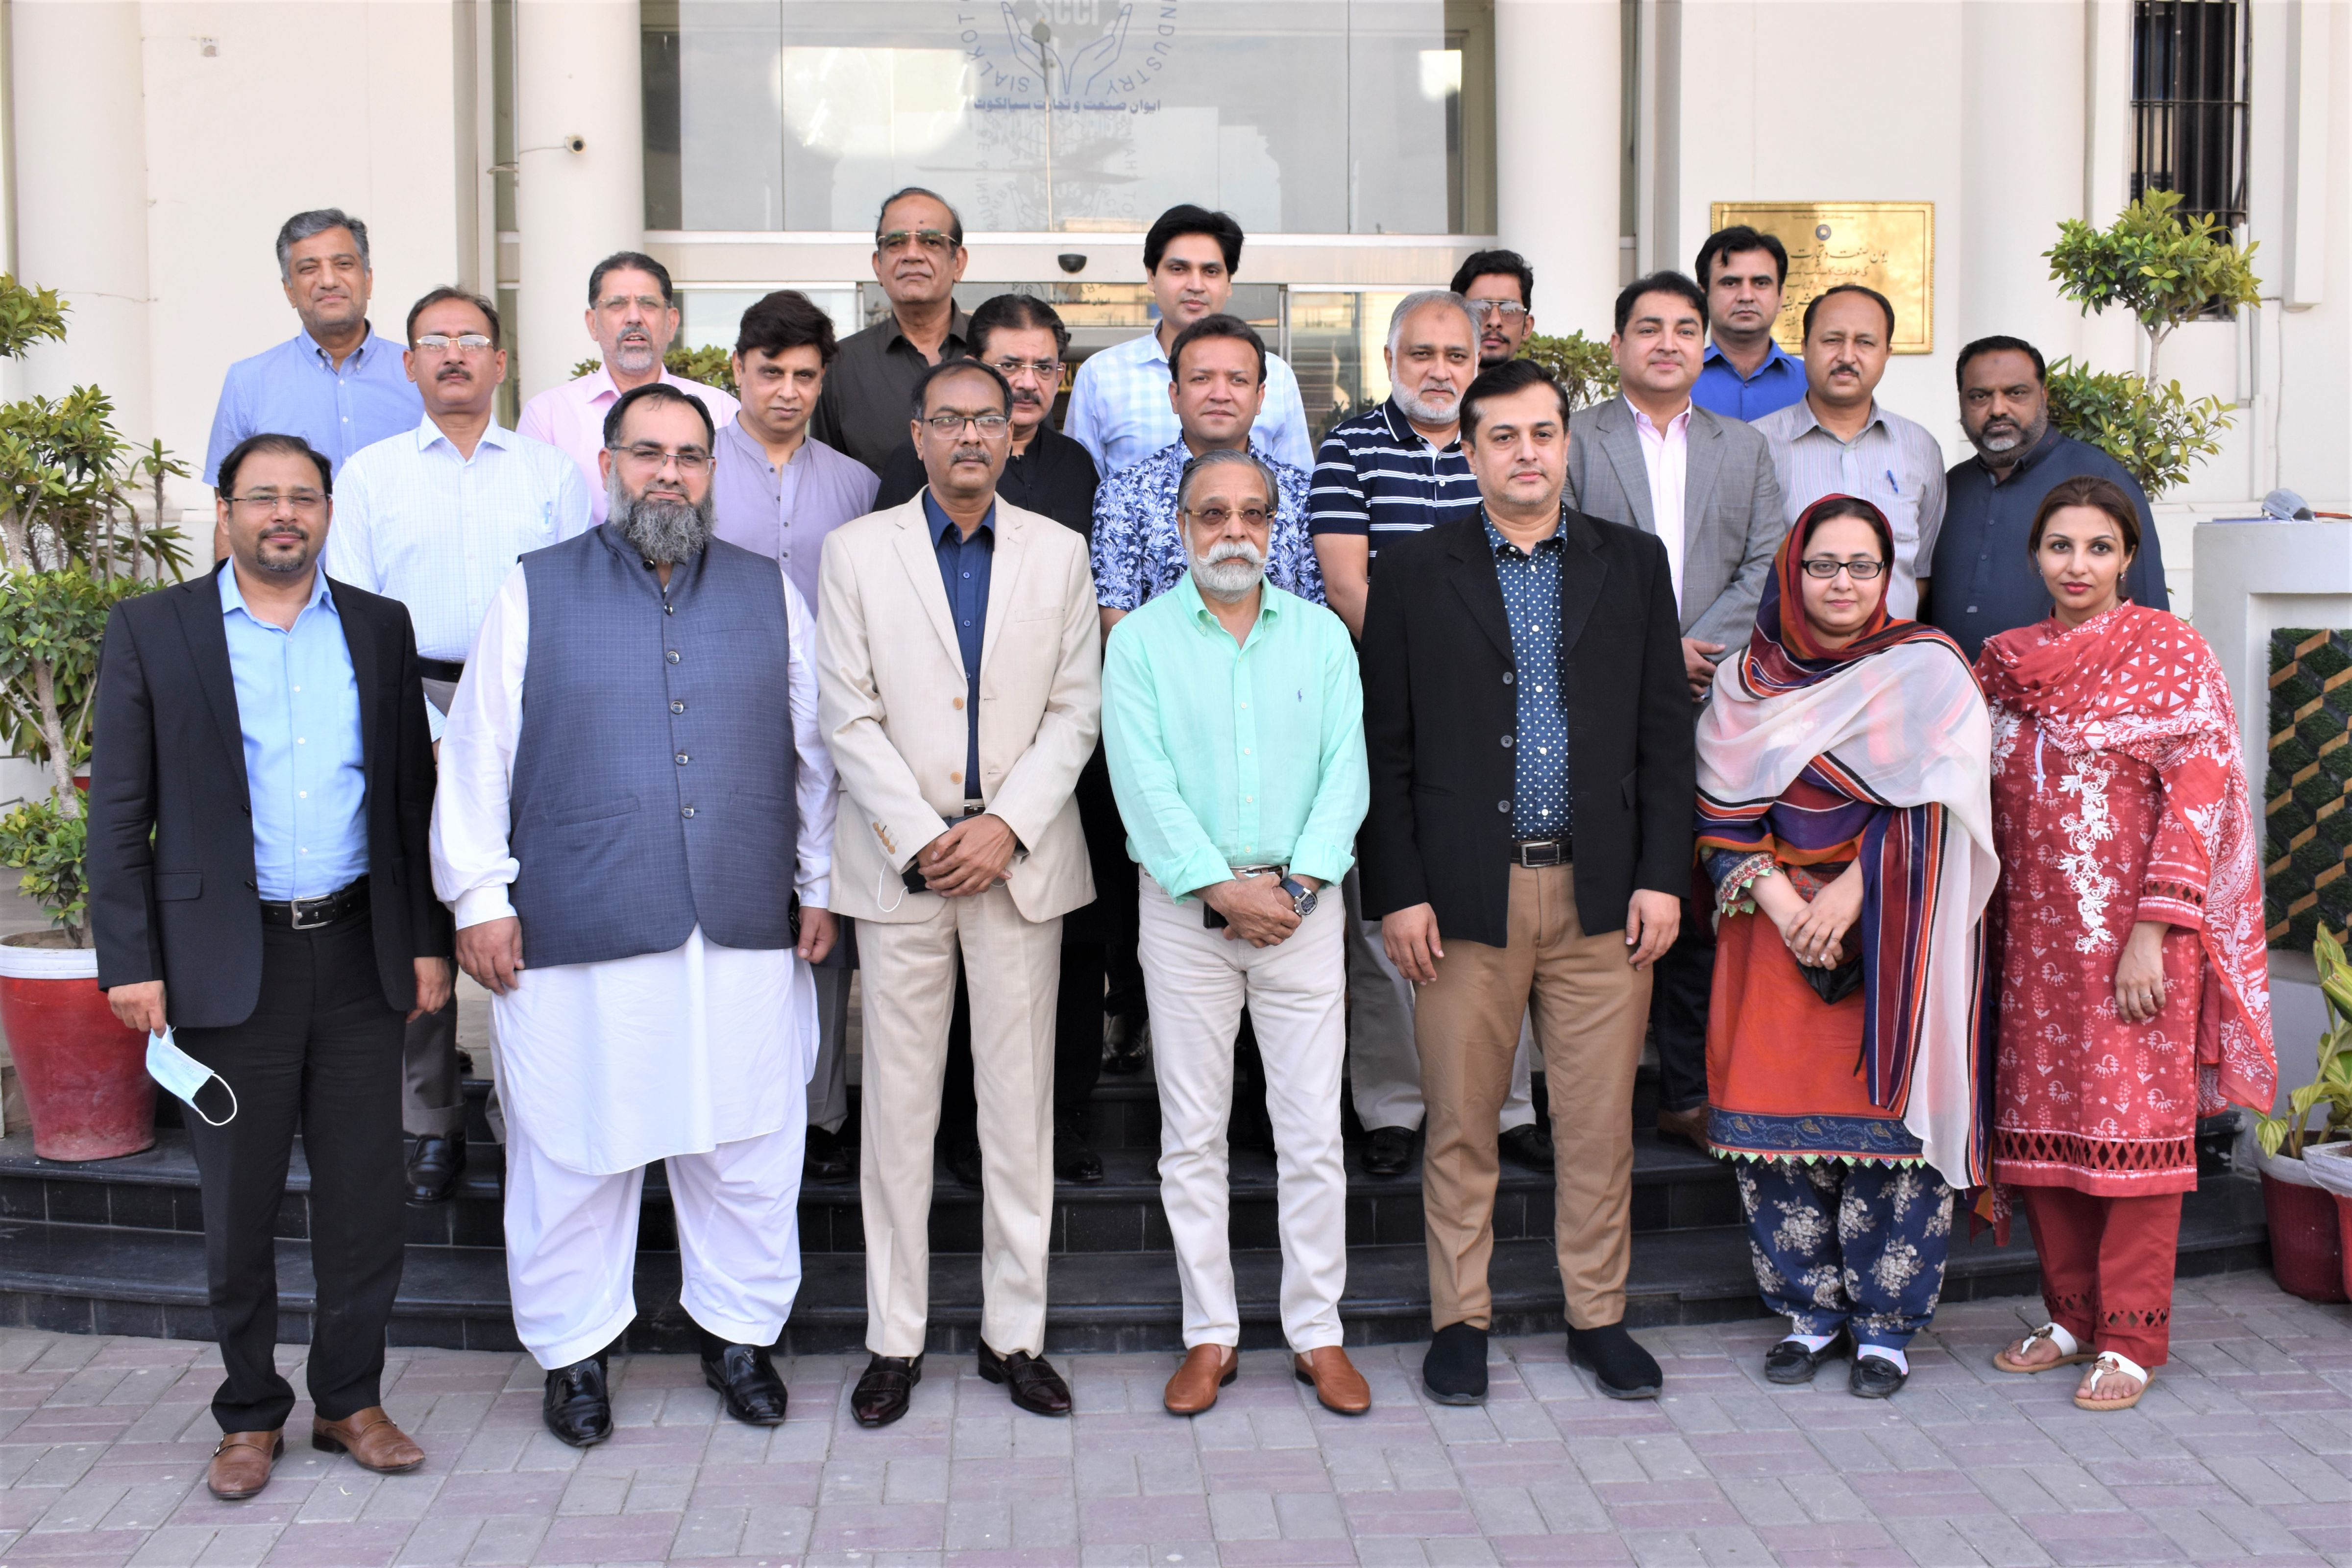 On July 14, 2021, A delegation of Trade Development Authority Pakistan (TDAP) led by Mr. Shafqatullah Siddiqui, Director General, TDAP (Engineering & Mineral Division) visited Sialkot Chamber of Commerce & Industry. Mr. Qaisar Iqbal Baryar, President, Mr. Khuram Aslam, Senior Vice President and Mr. Baber Iqbal, Chairman of SCCI Departmental Committee on Surgical /Dental/Veterinary/ Cutlery and Kitchenware Industry received the guests. During the meeting, many issues related to Medical Device Regulation (MDR) faced by Surgical sectors of Sialkot were presented to TDAP officials.